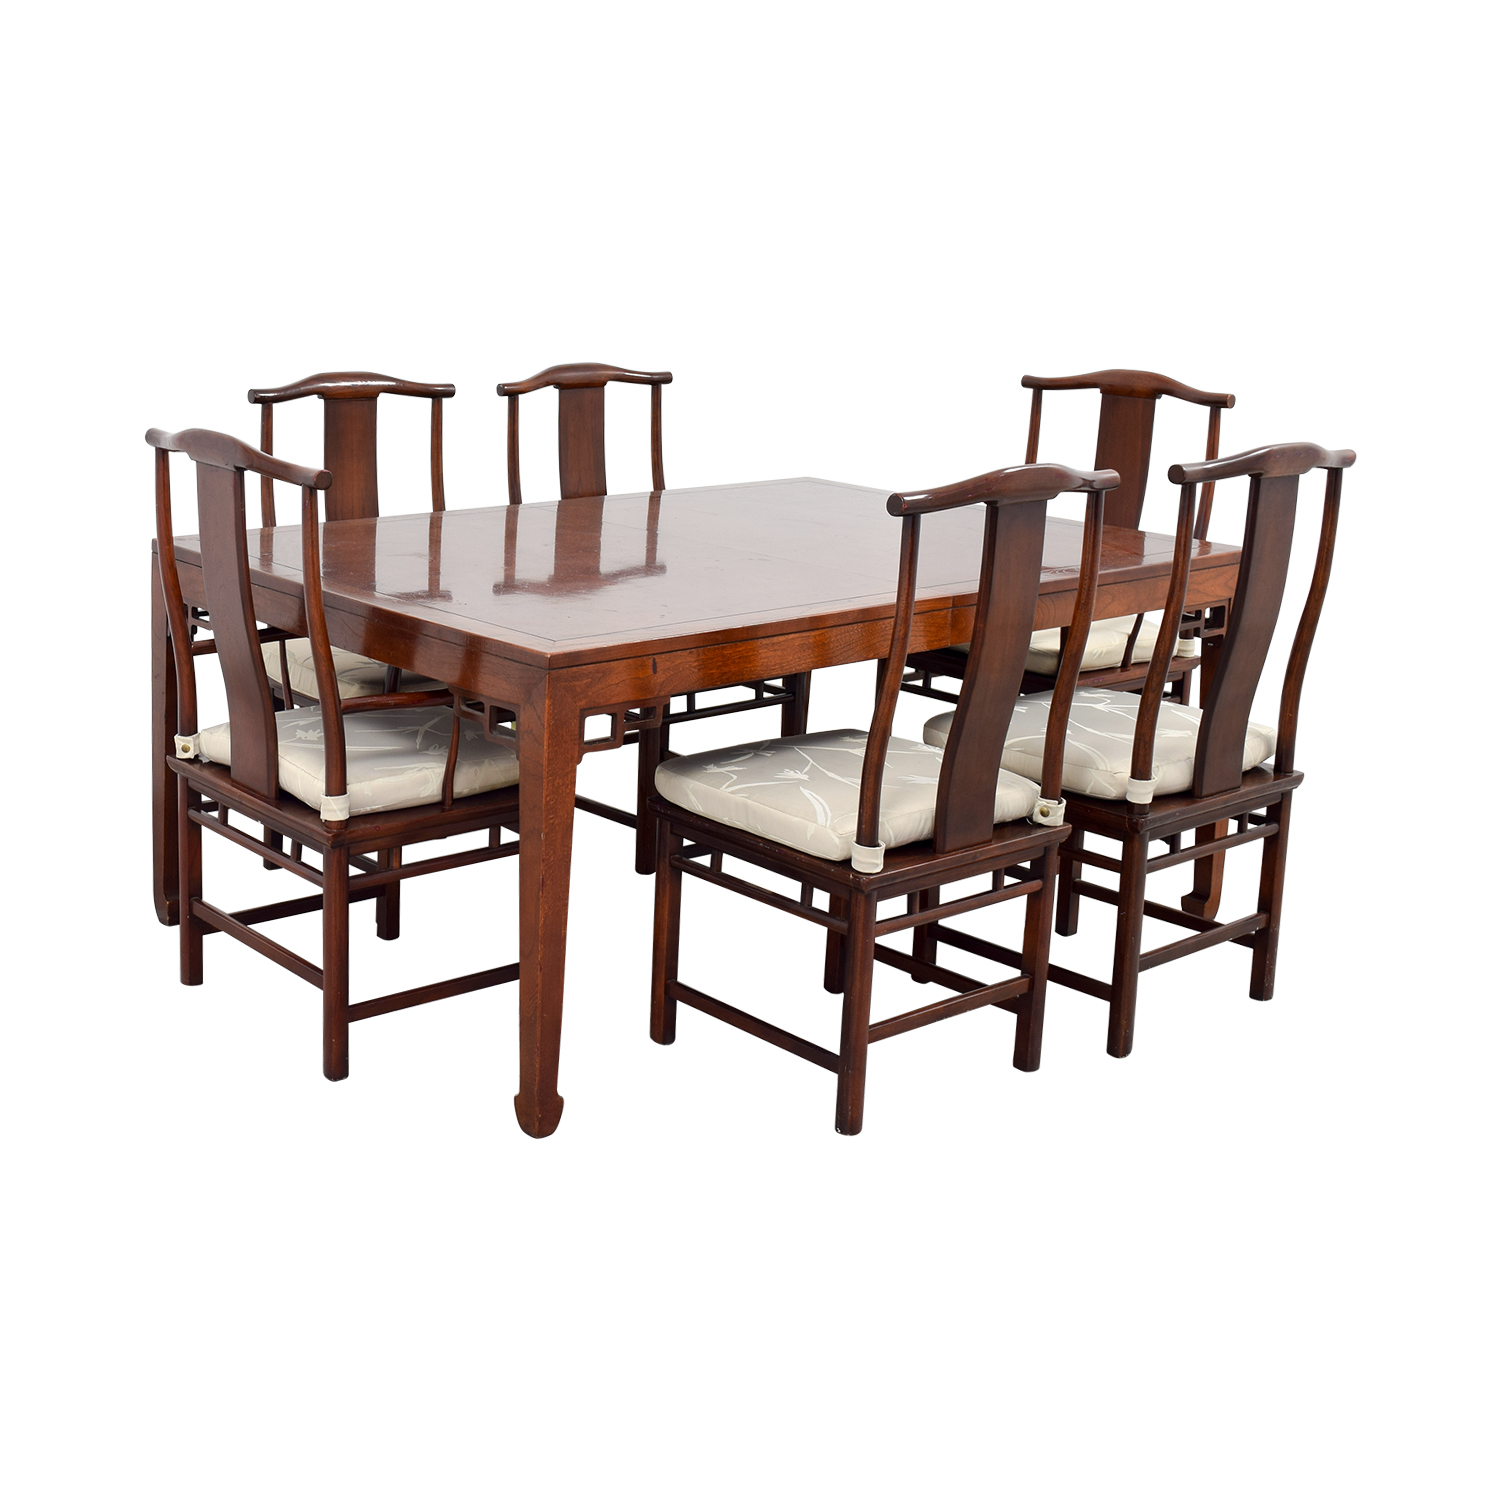 Baker Furniture Baker Furniture Mahogany Dining Set with Two Leaves Dark Cherry